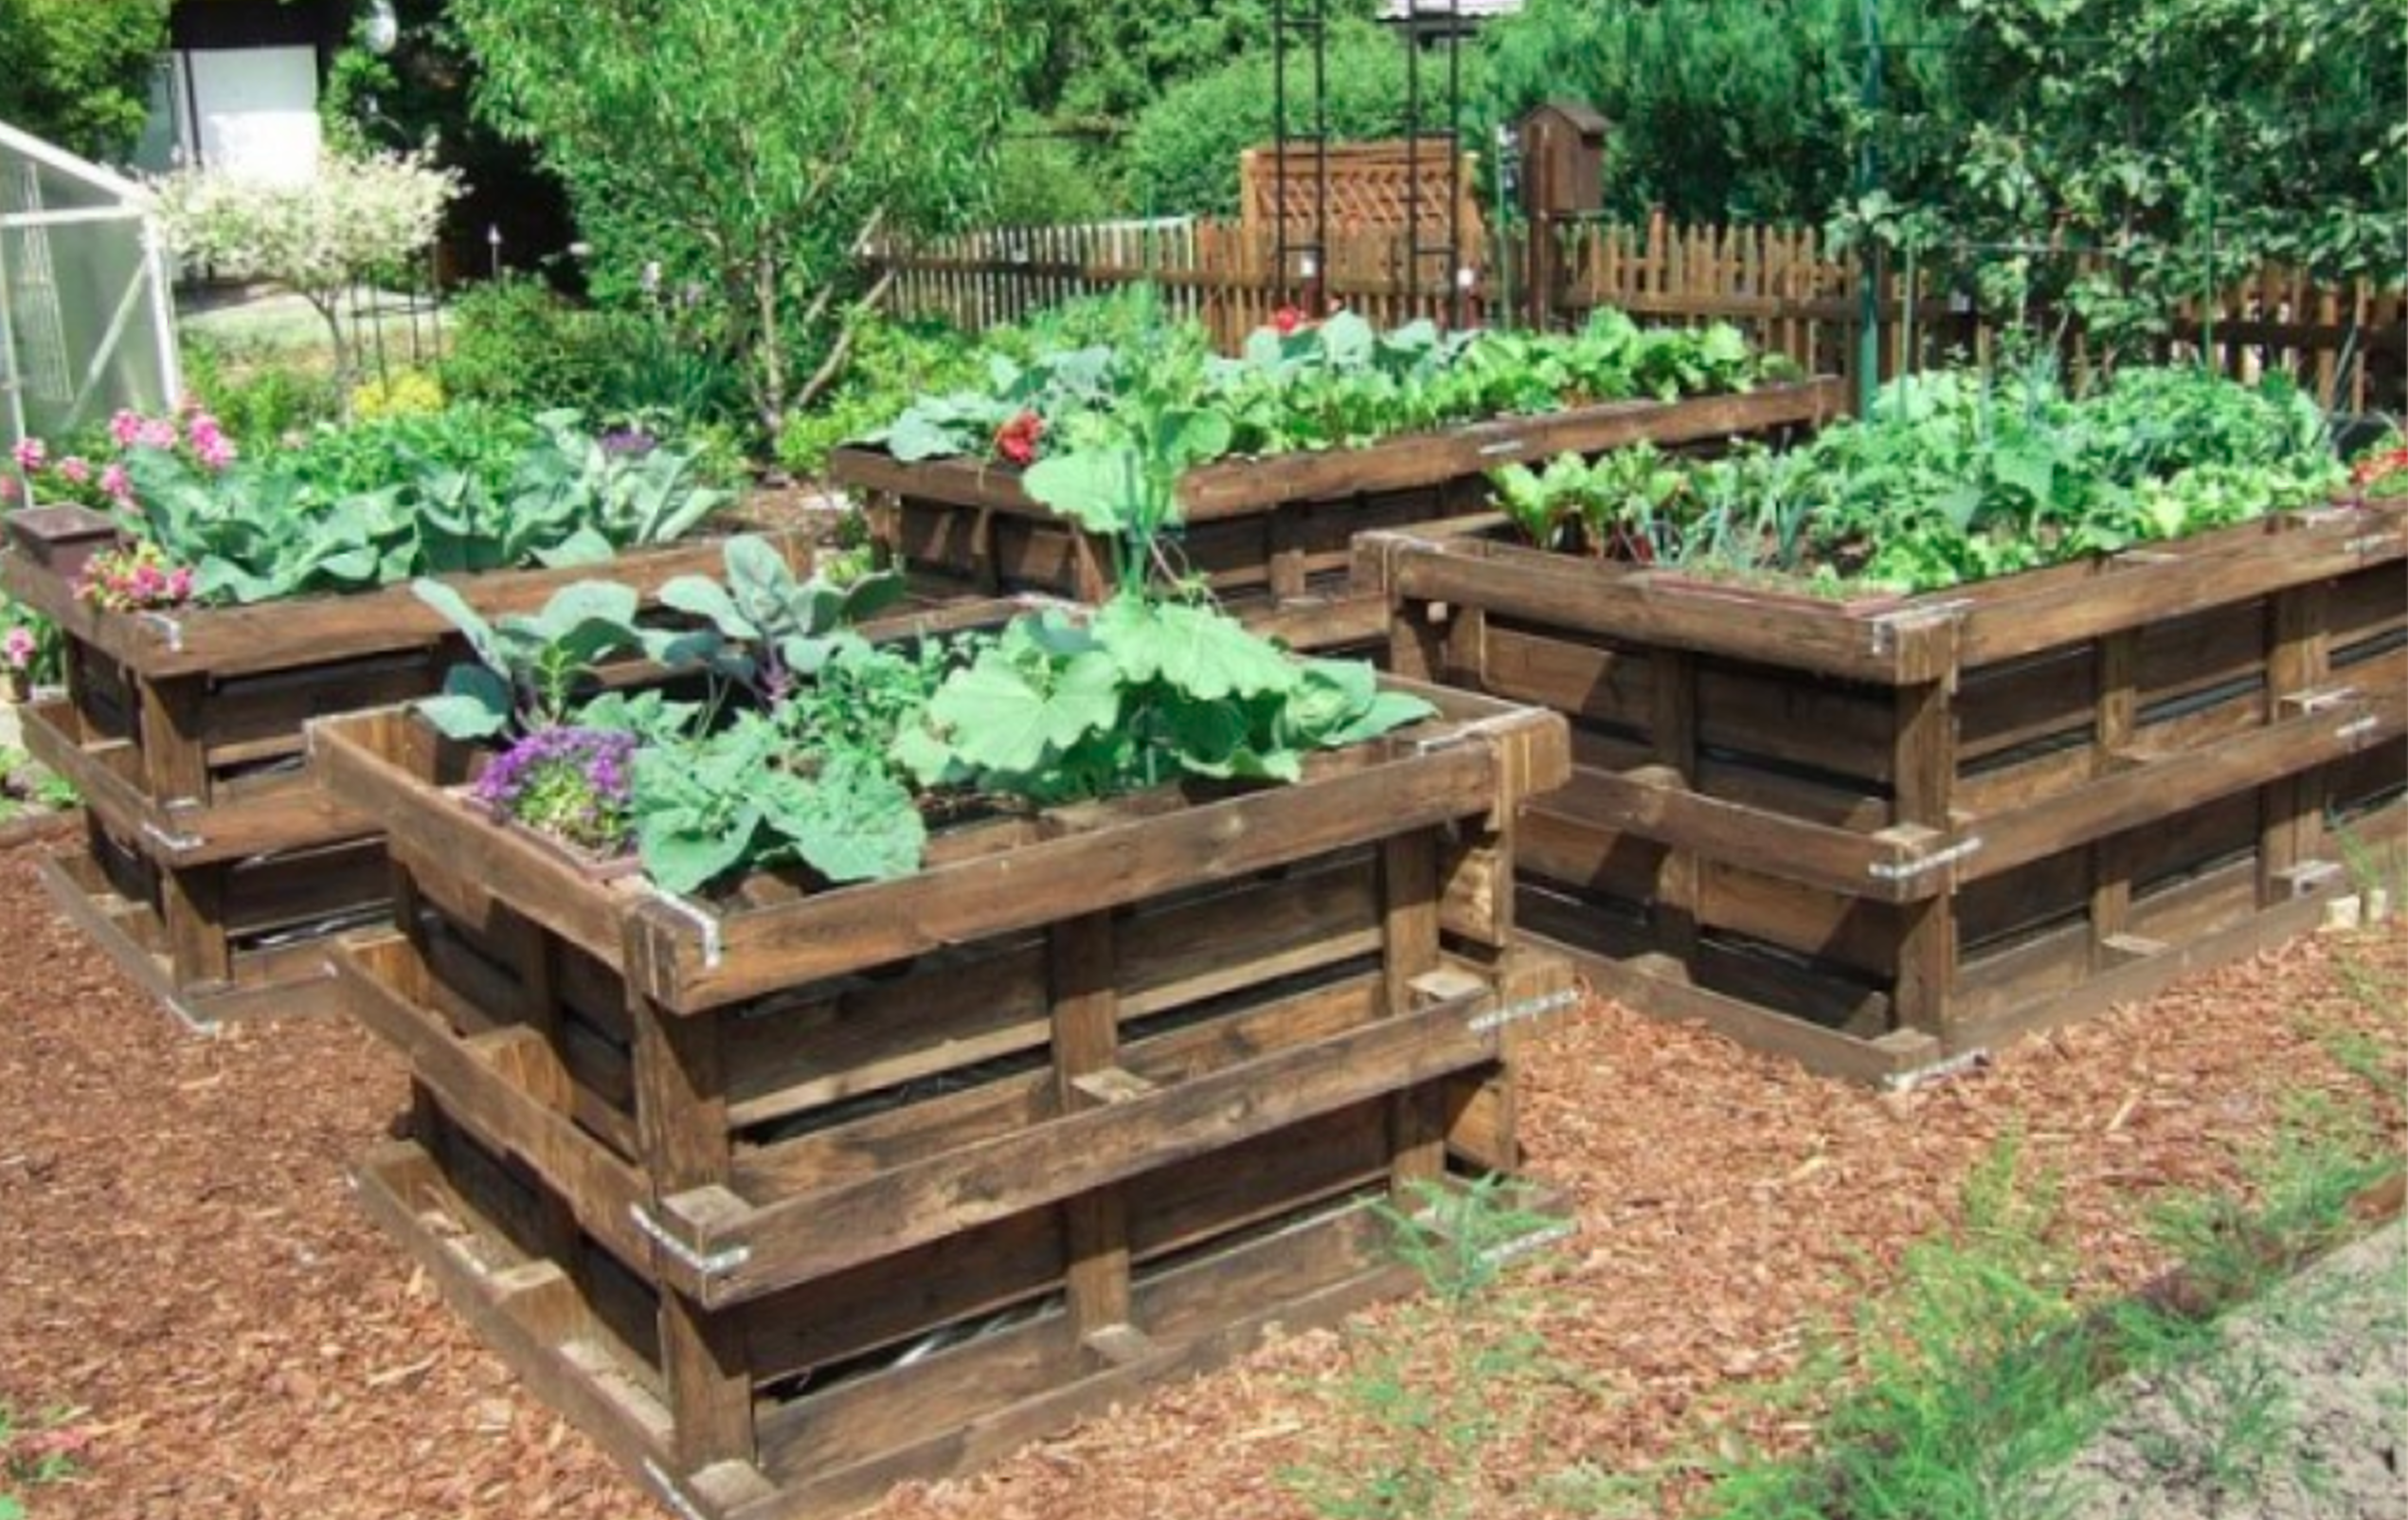 4 Wood Pallet Ideas for the Garden